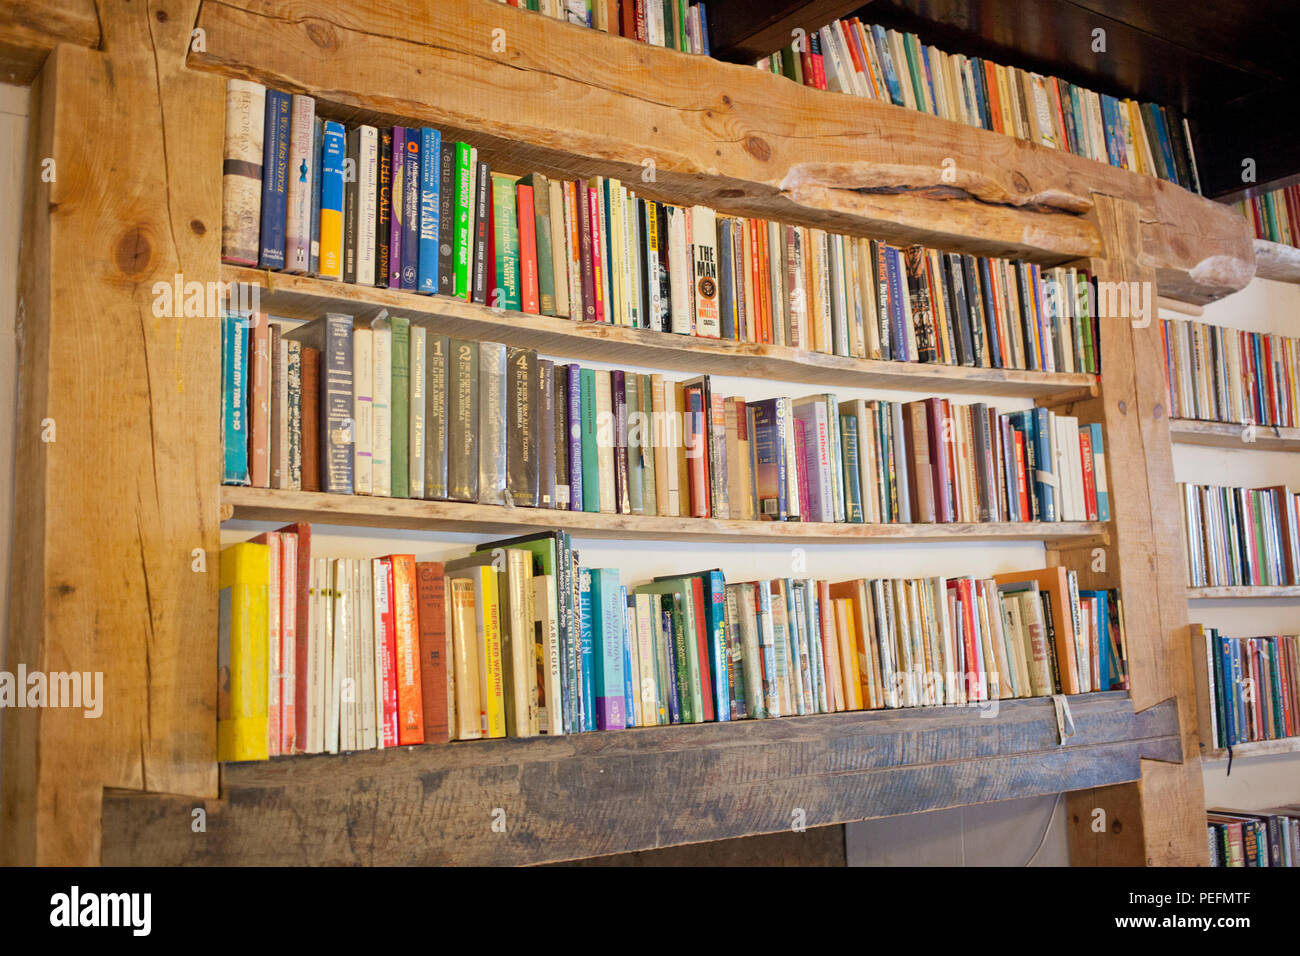 Old Books In A Wooden Bookshelf